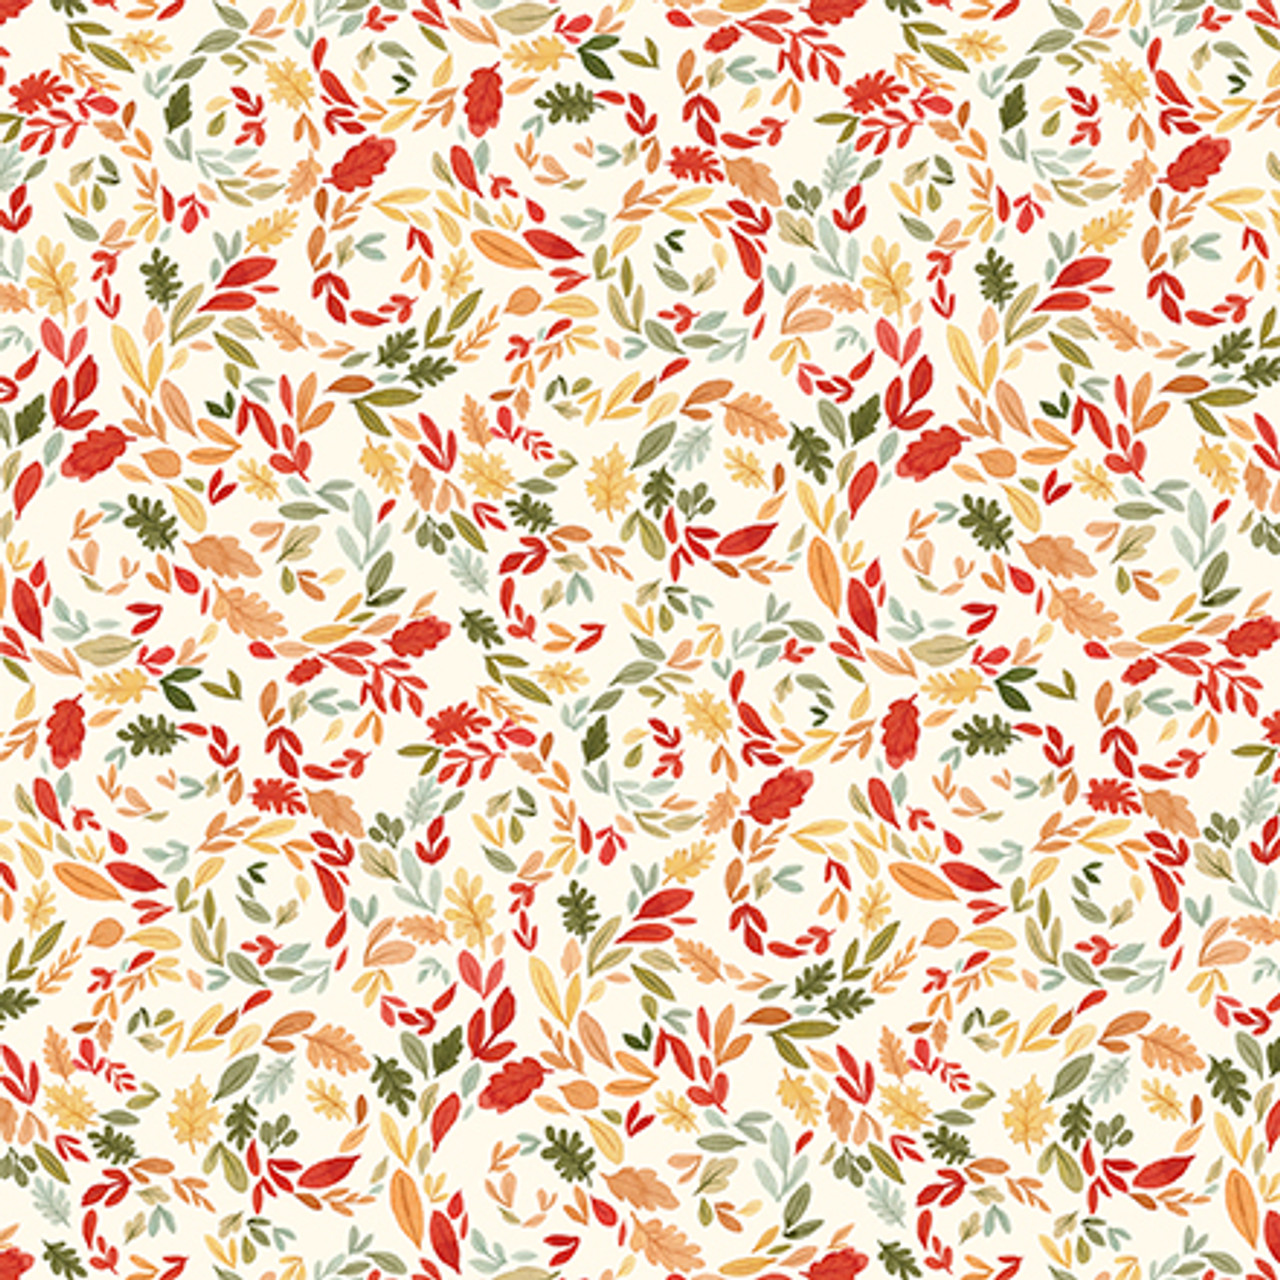 Hello Autumn Collection Swirly Leaves 12 x 12 Double-Sided Scrapbook Paper by Carta Bella